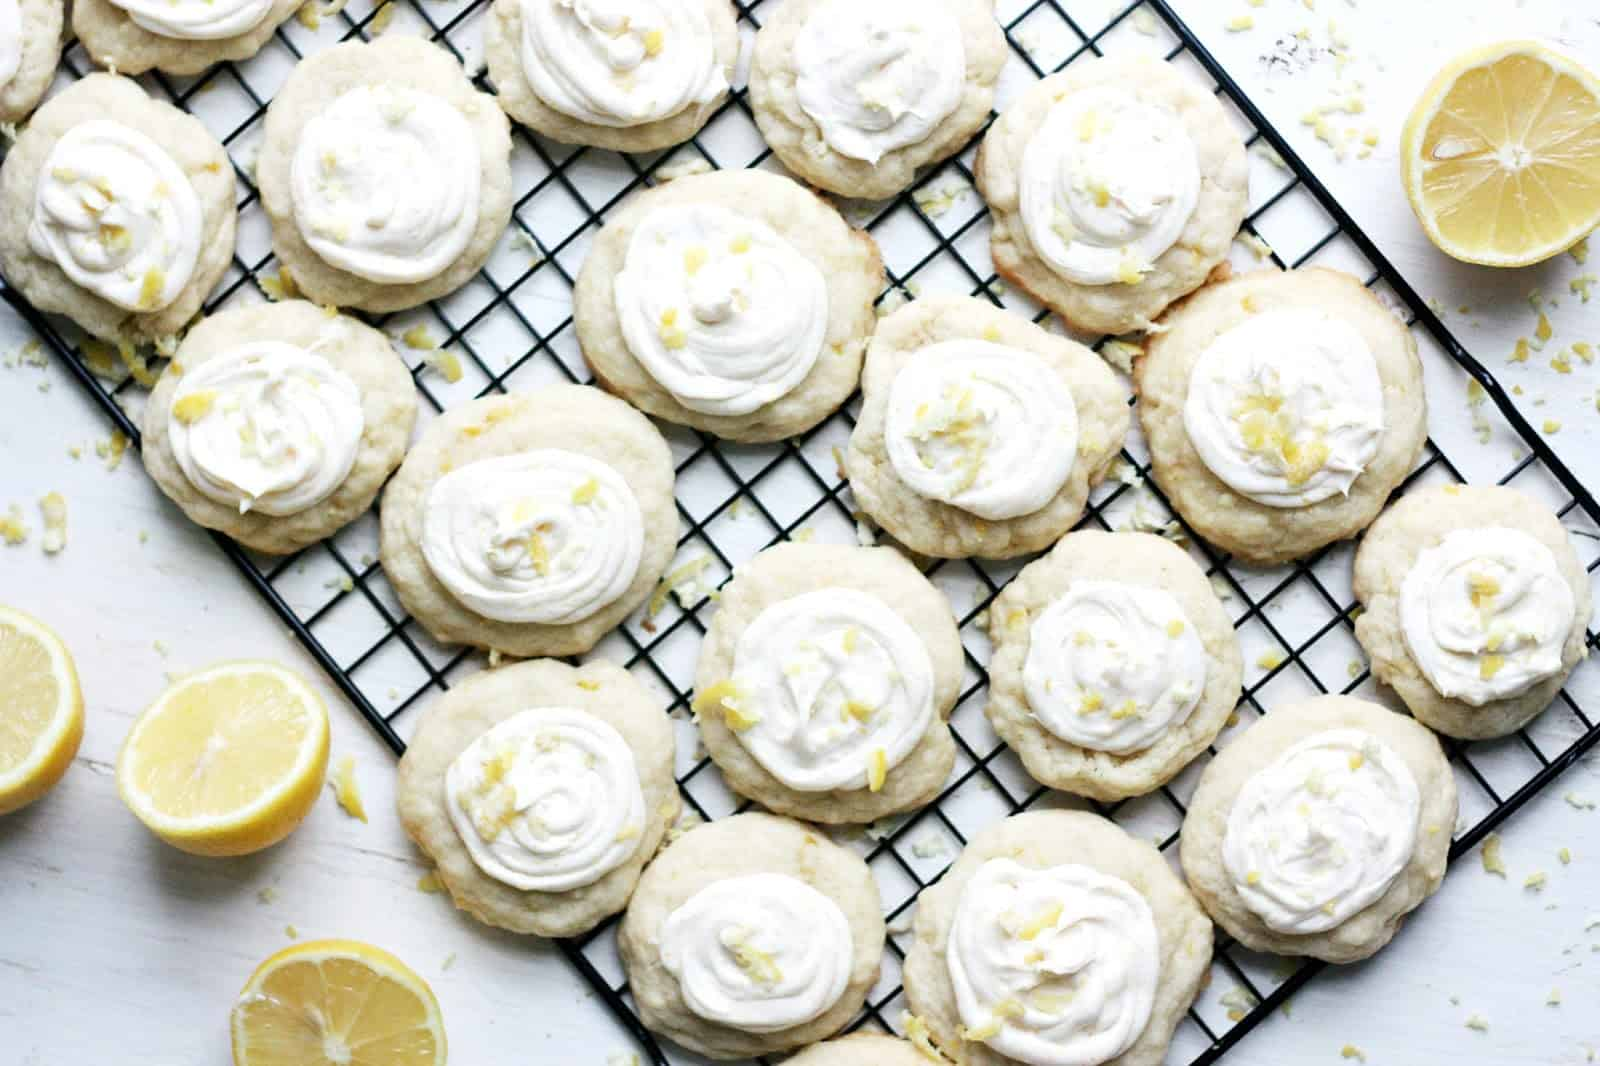 These lemon cookies are moist, chewy and creamy, with the perfect sweet flavor, making your insides feel as springy as the tulips popping up outside.